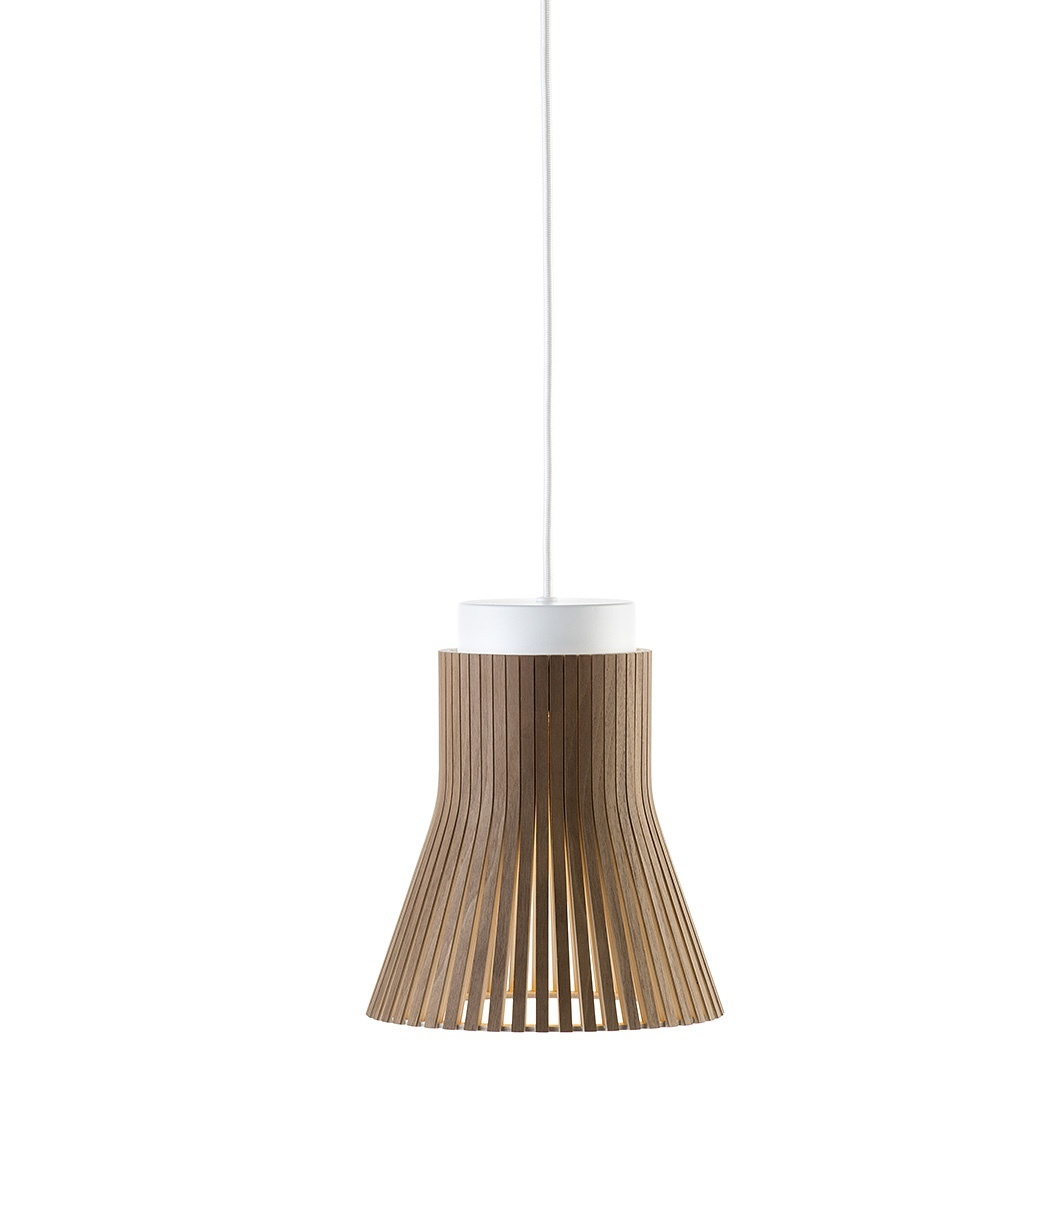 Secto Design Secto Petite 4600 hanglamp-Walnoot